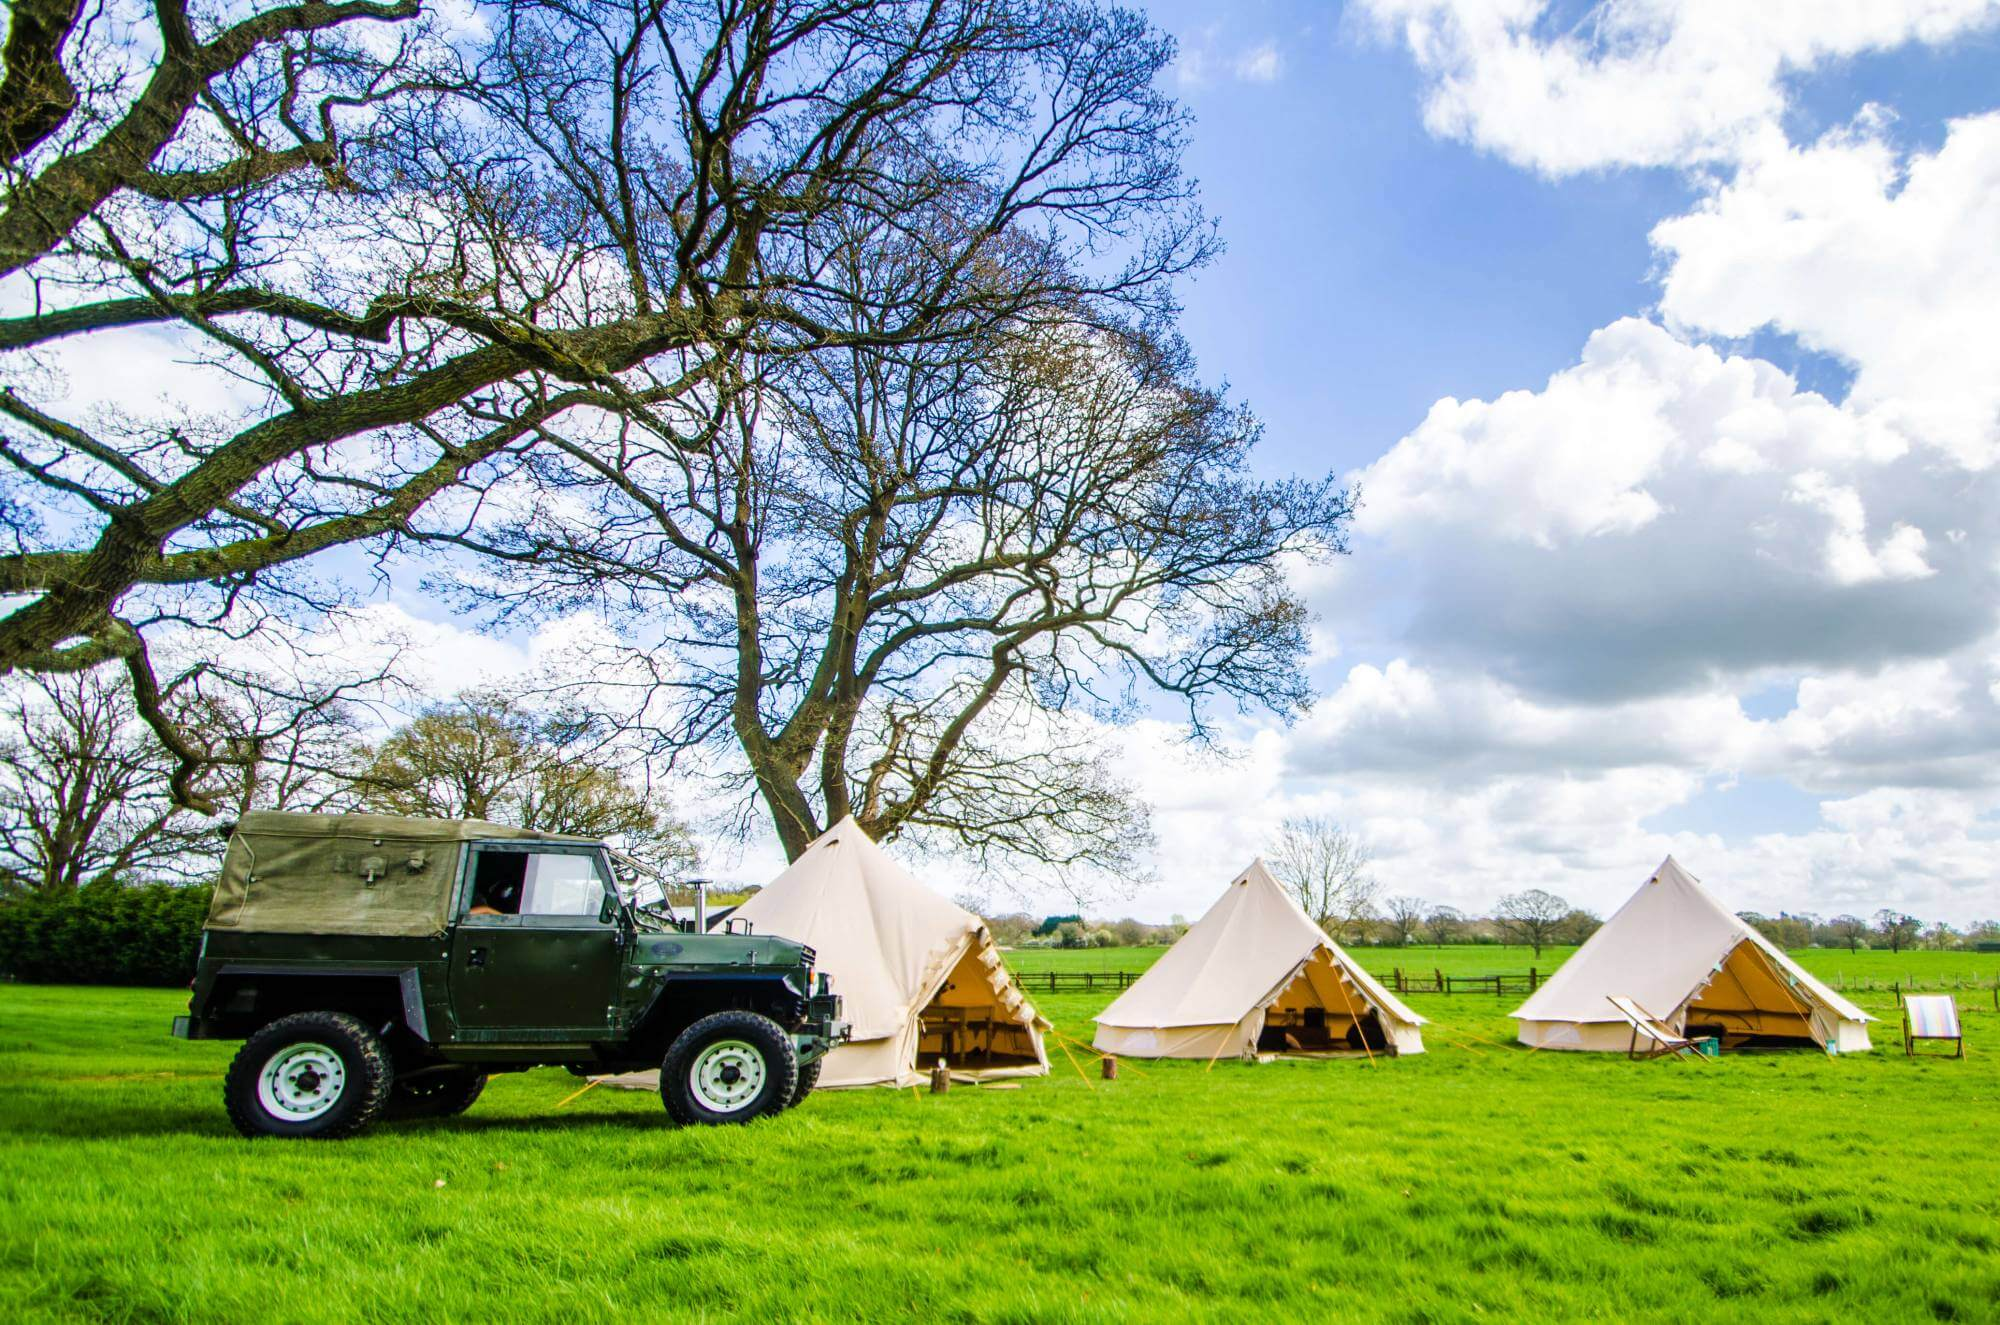 Land rover packed out side three Bell Tents